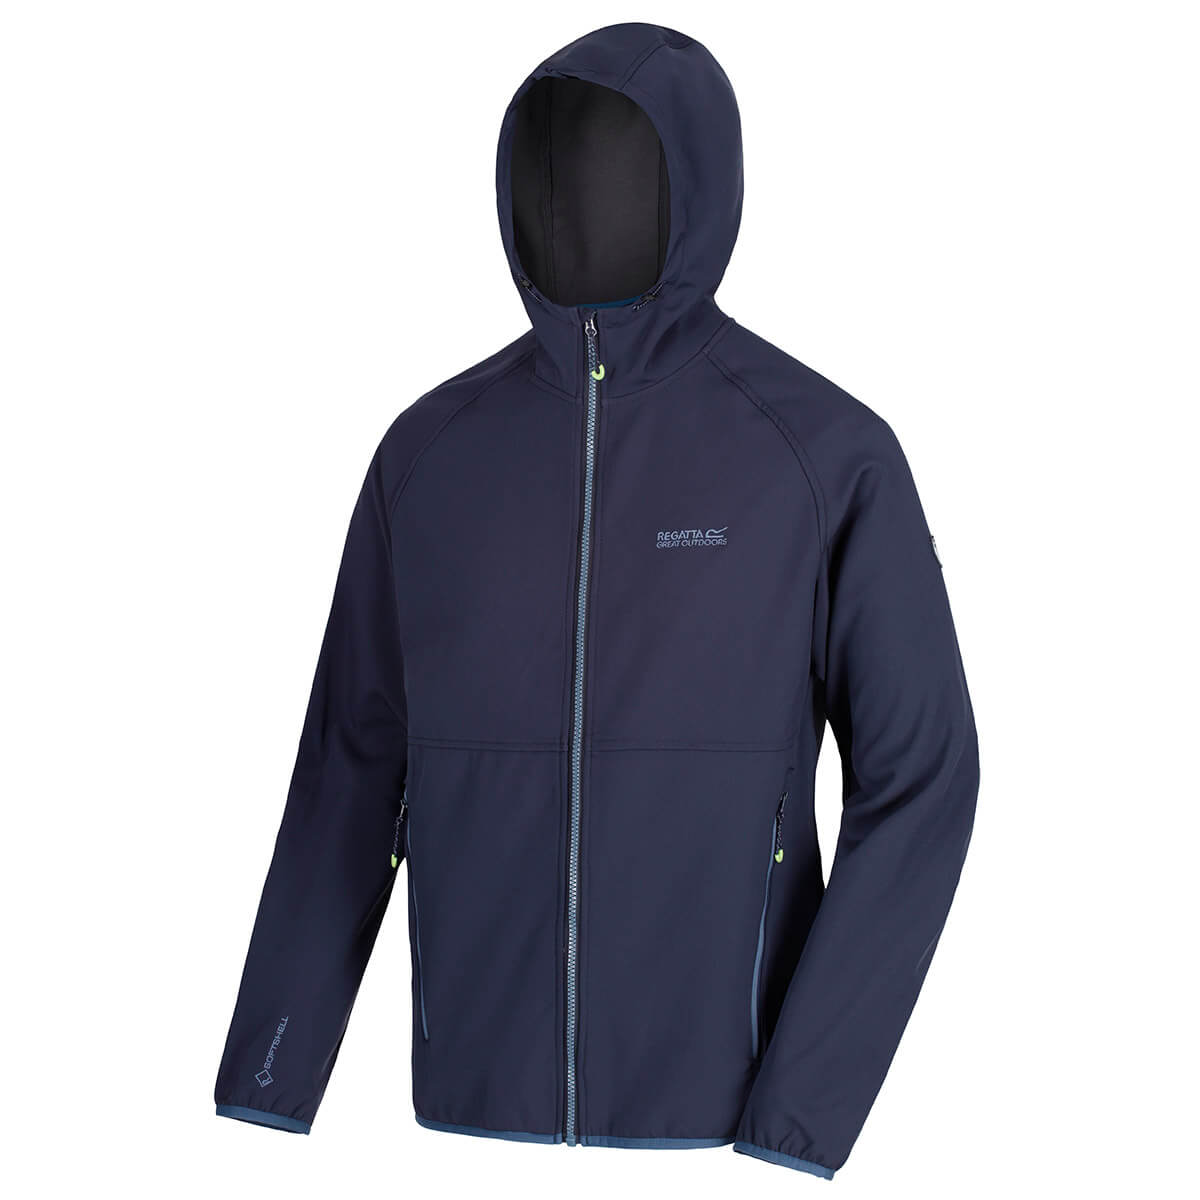 Regatta-Mens-Arec-II-Softshell-Waterproof-Stretch-Hooded-Jacket-68-OFF-RRP thumbnail 16